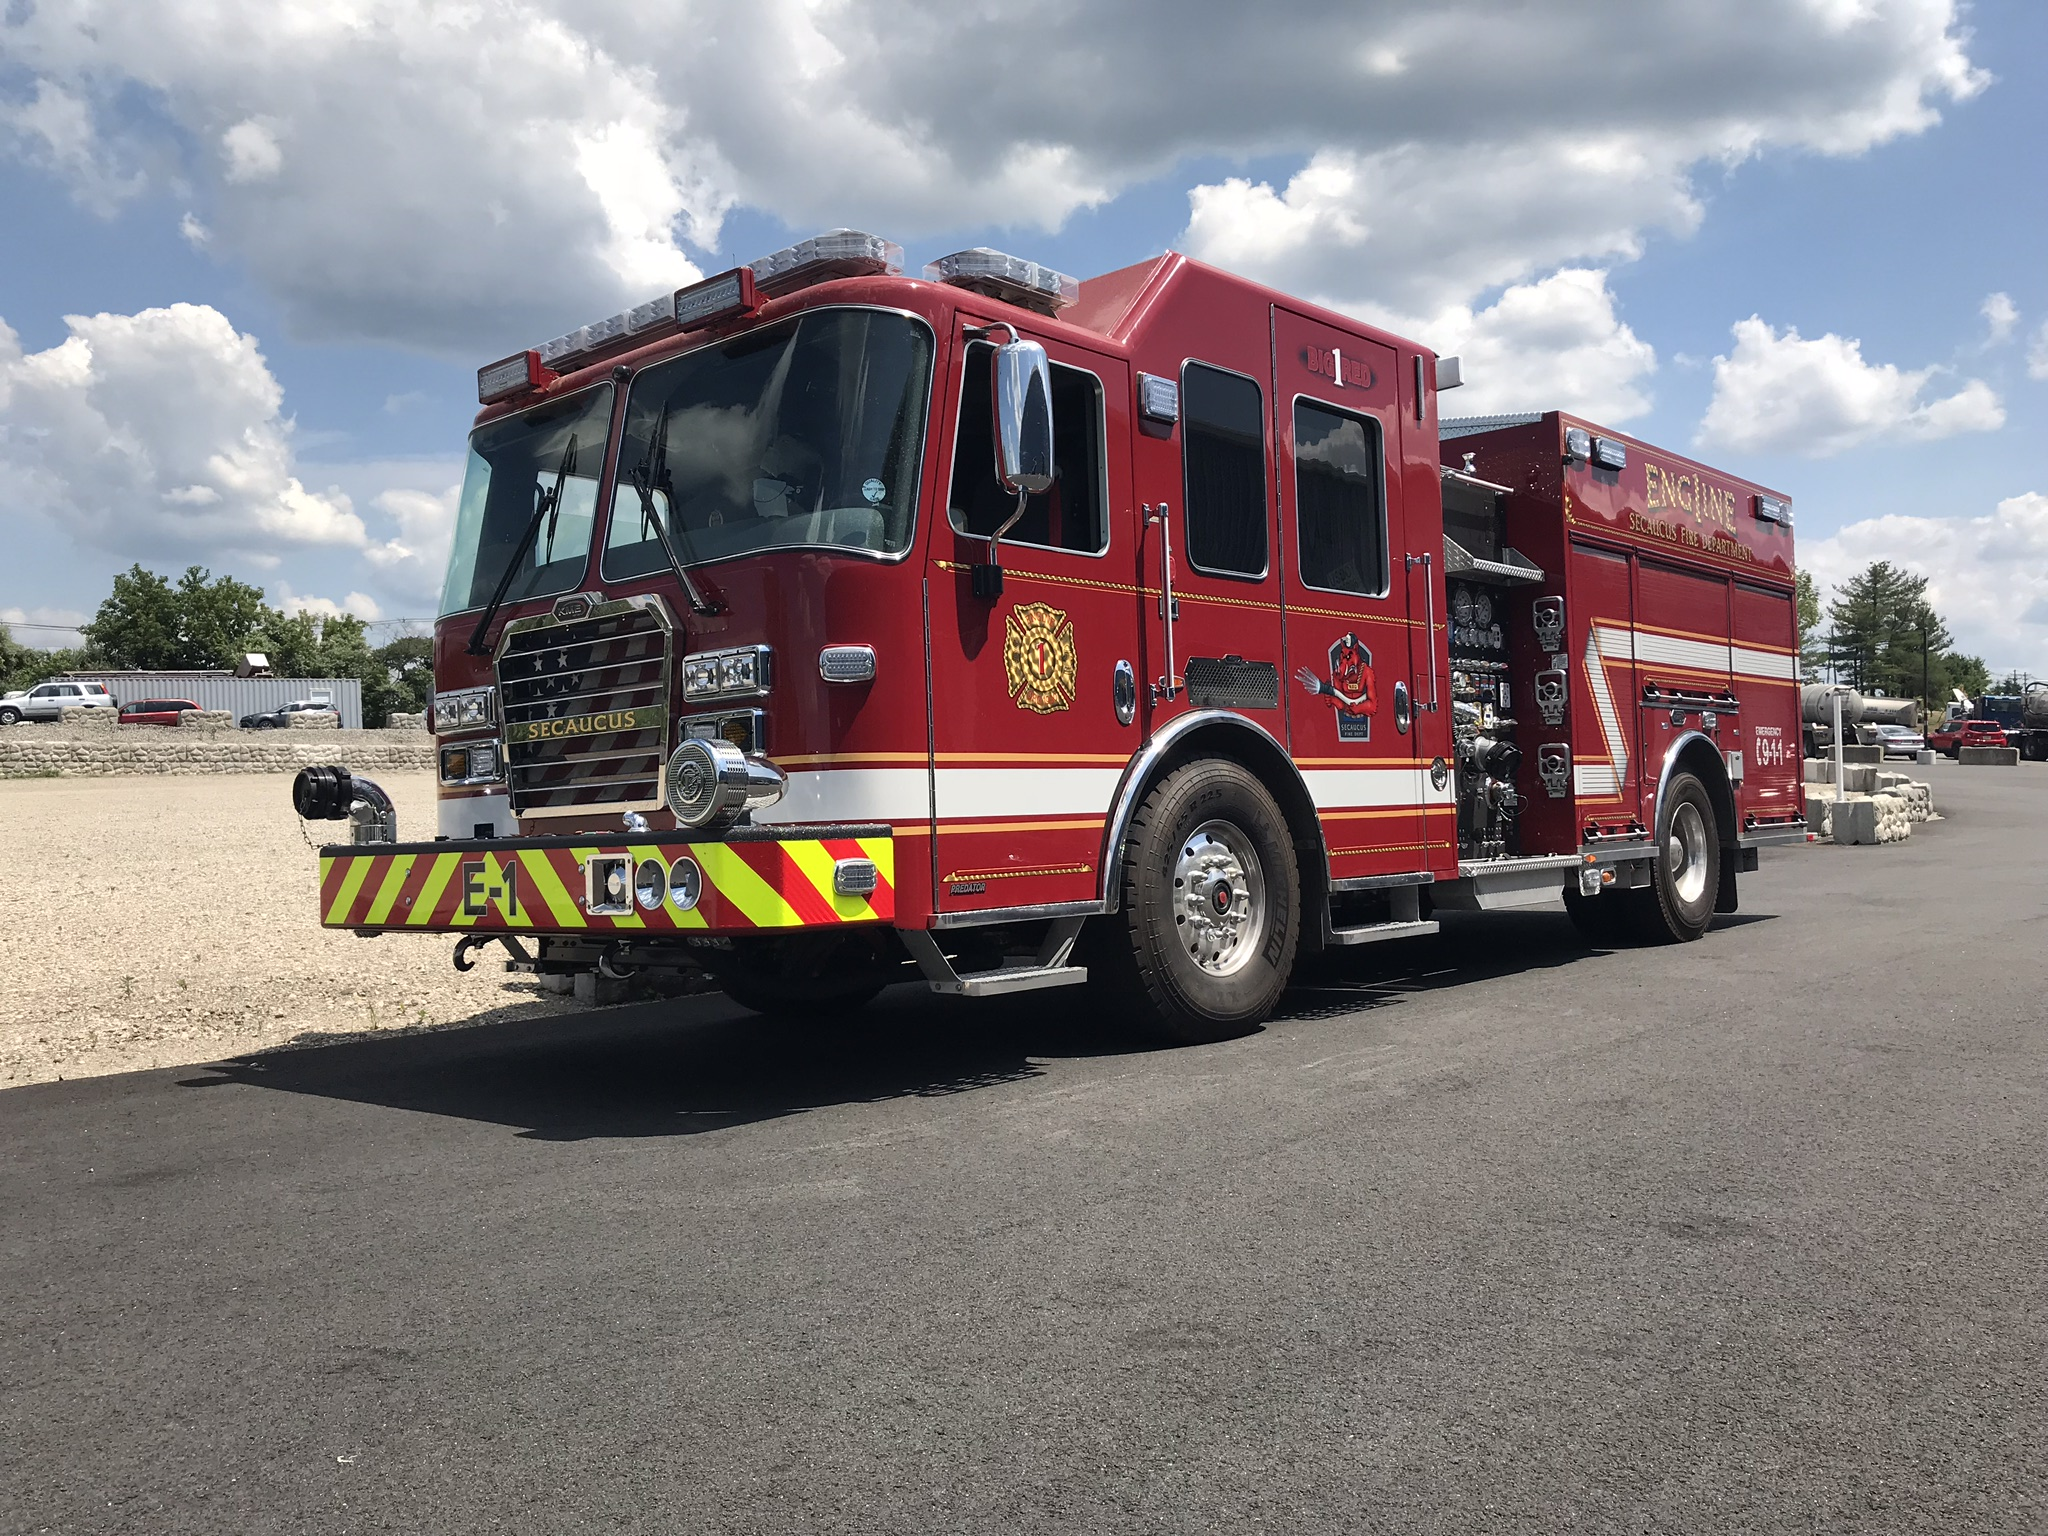 First Priority Emergency Vehicles: Fire Sales